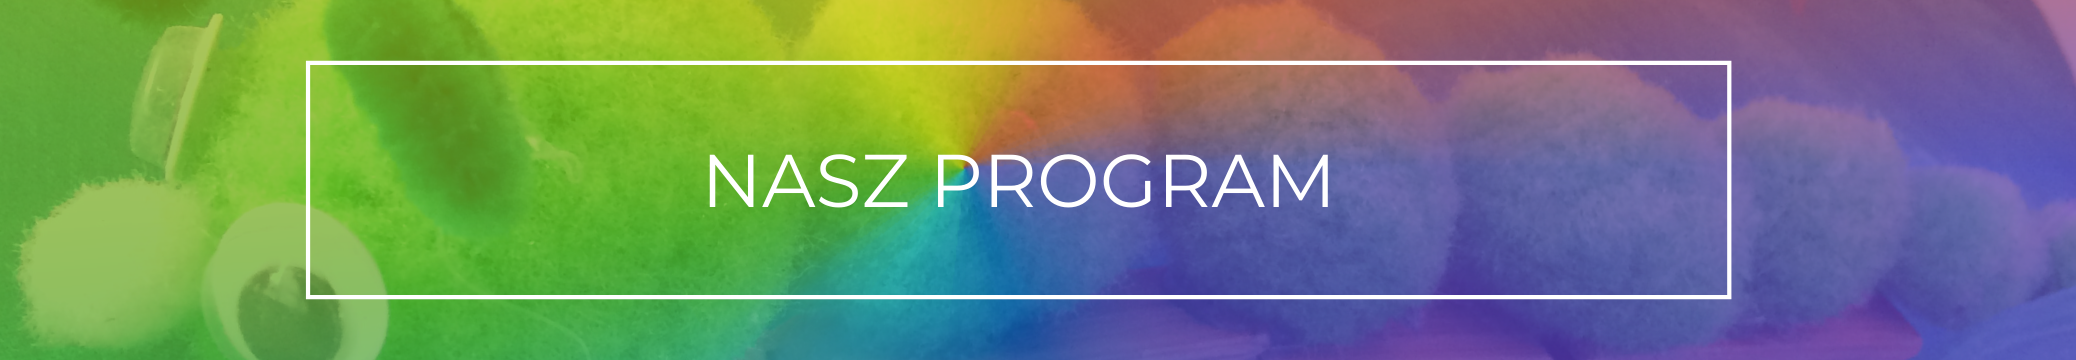 header nasz program